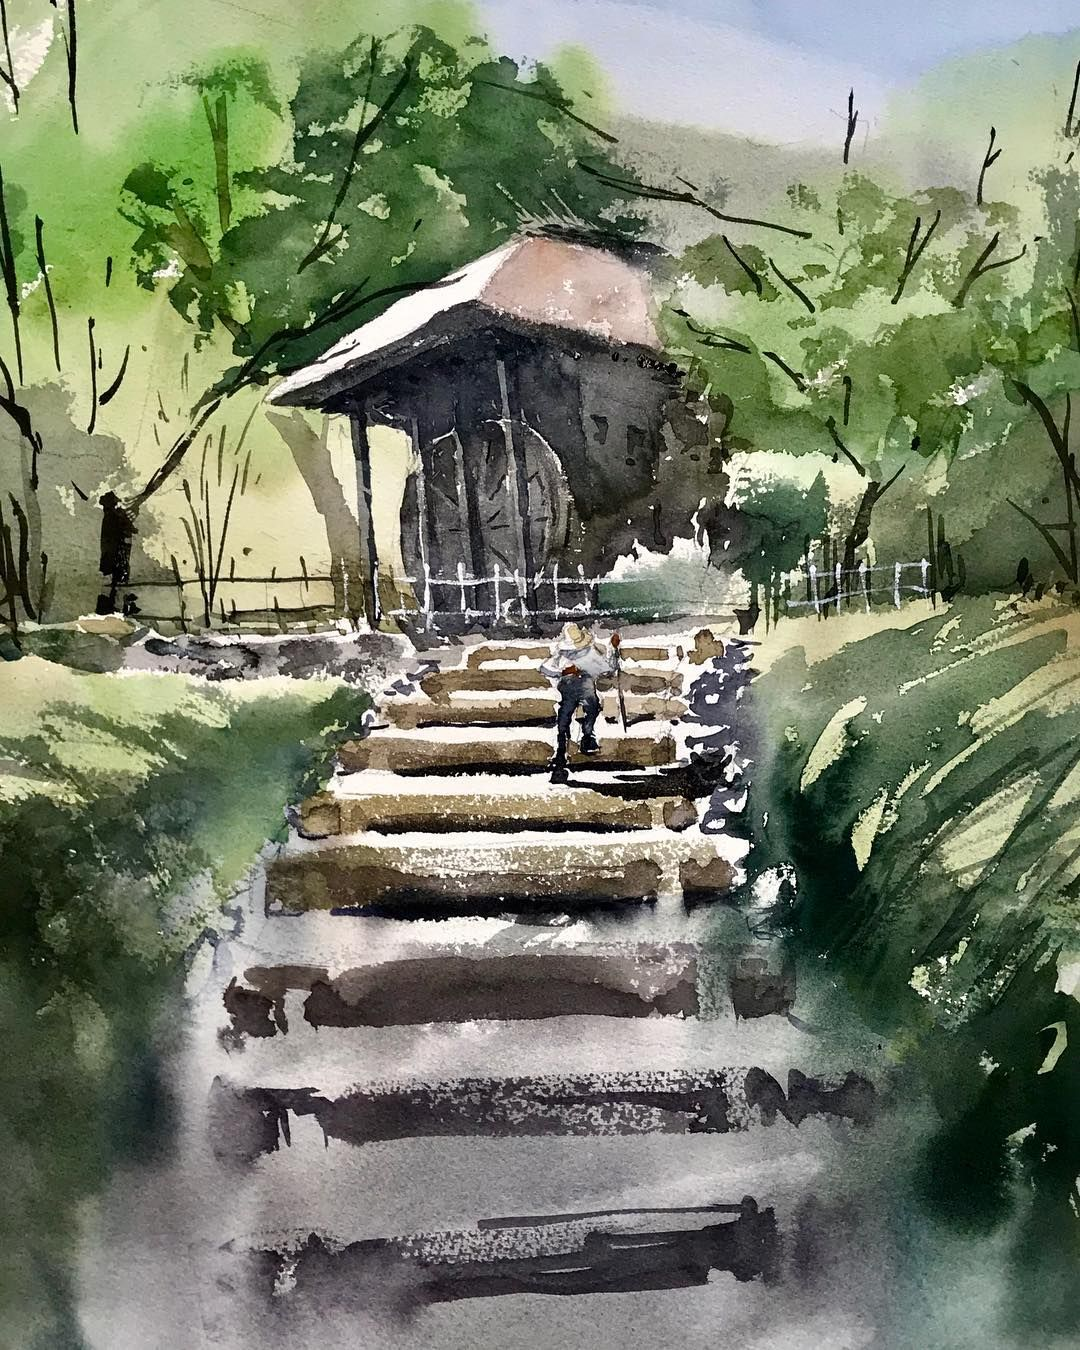 Kazuo Kasai On Instagram Water Mill Hut 51cm 36cm In